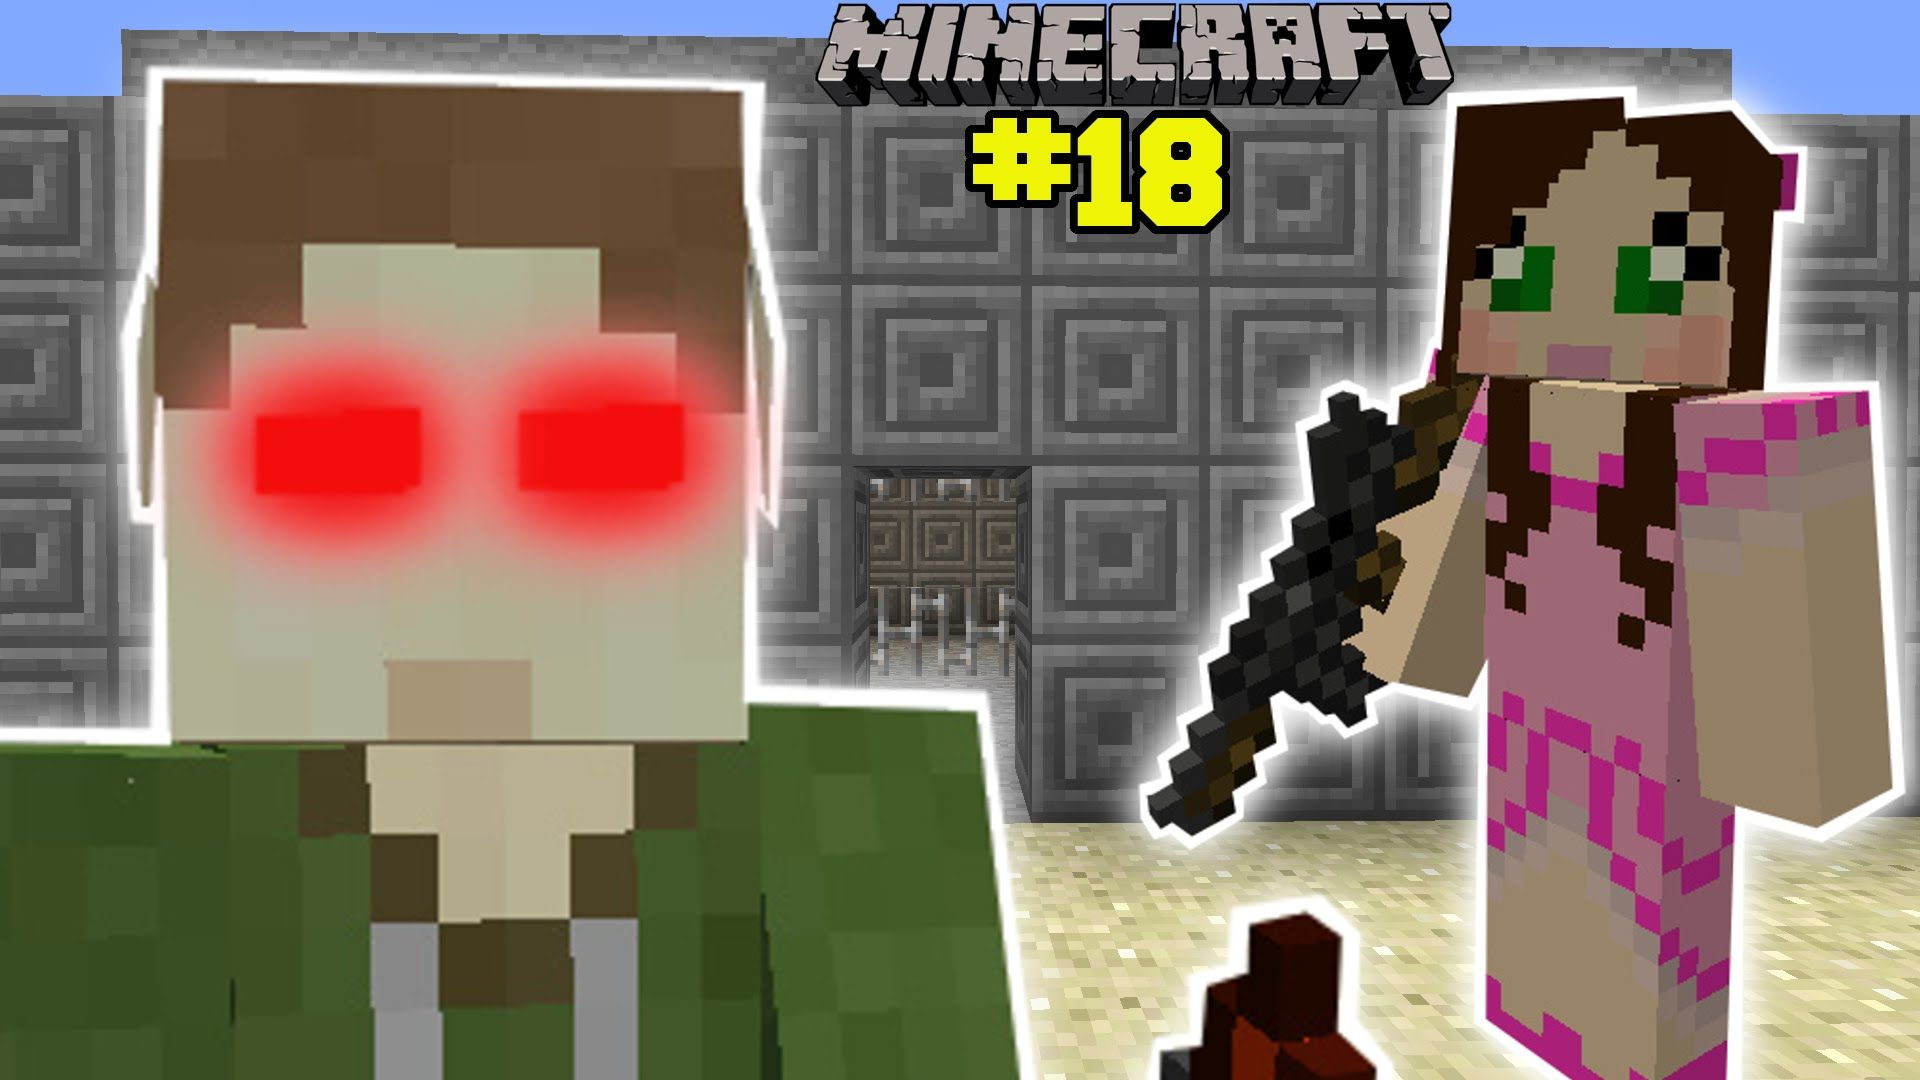 bfe48bec3083c8022cdca80926fceca9 - How To Get The Crafting Dead On Minecraft Pc